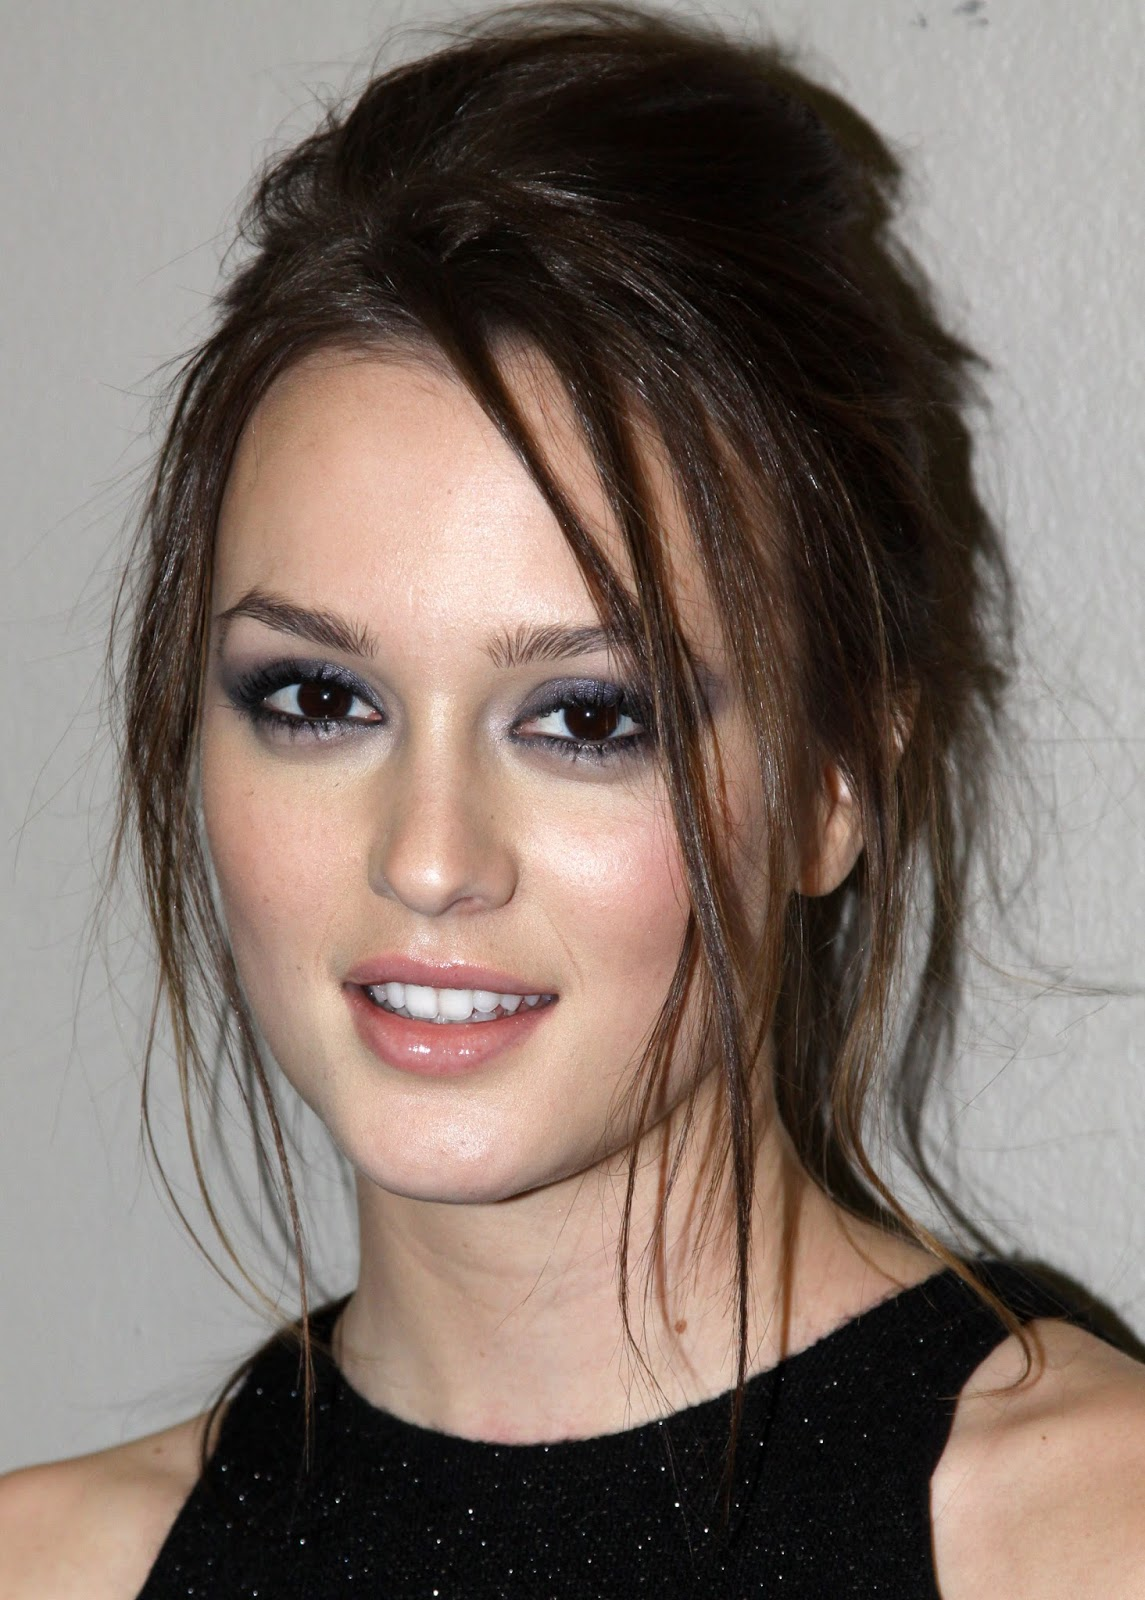 Leighton Meester Beautiful Actress HD Pictures HD  - leighton meester beautiful actress wallpapers